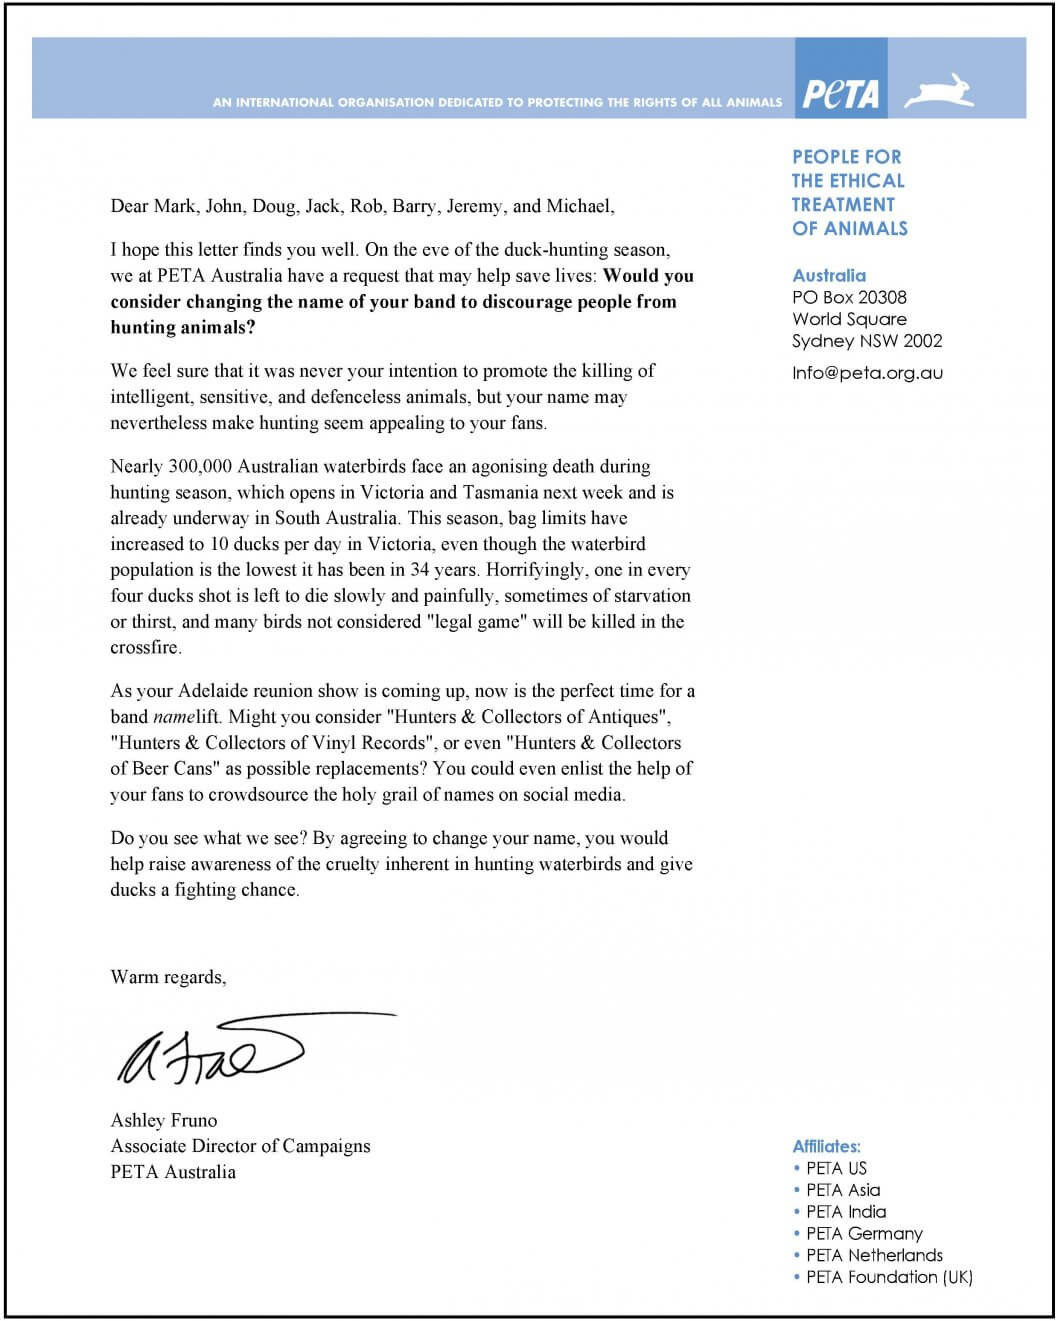 PETA Letter to Hunters  Collectors